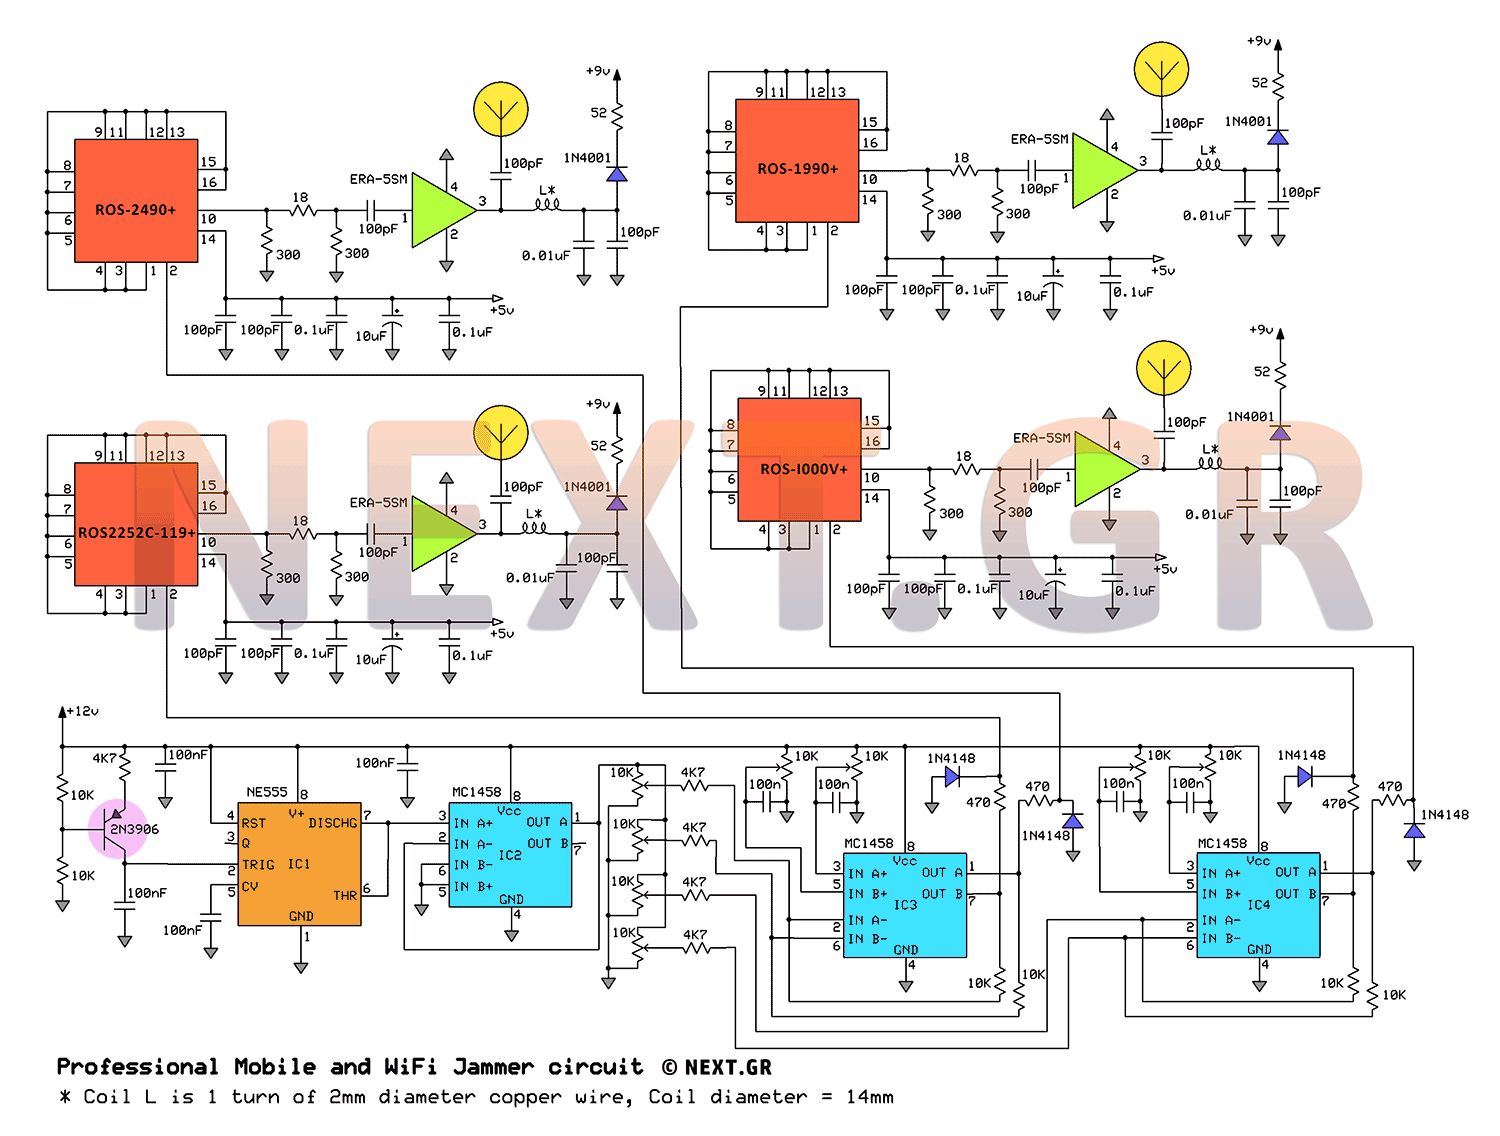 hight resolution of professional mobile 1g 2g 3g 4g wifi jammer circuit schematic